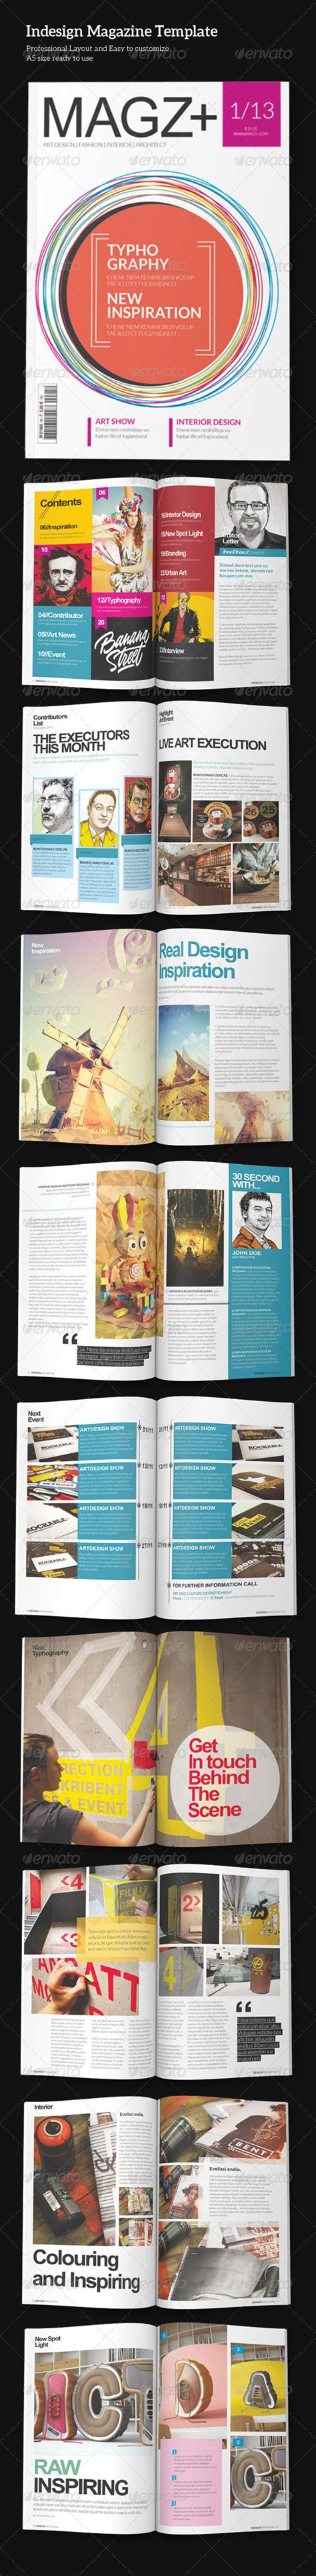 magazine layout template graphicriver indesign magazine template graphicriver